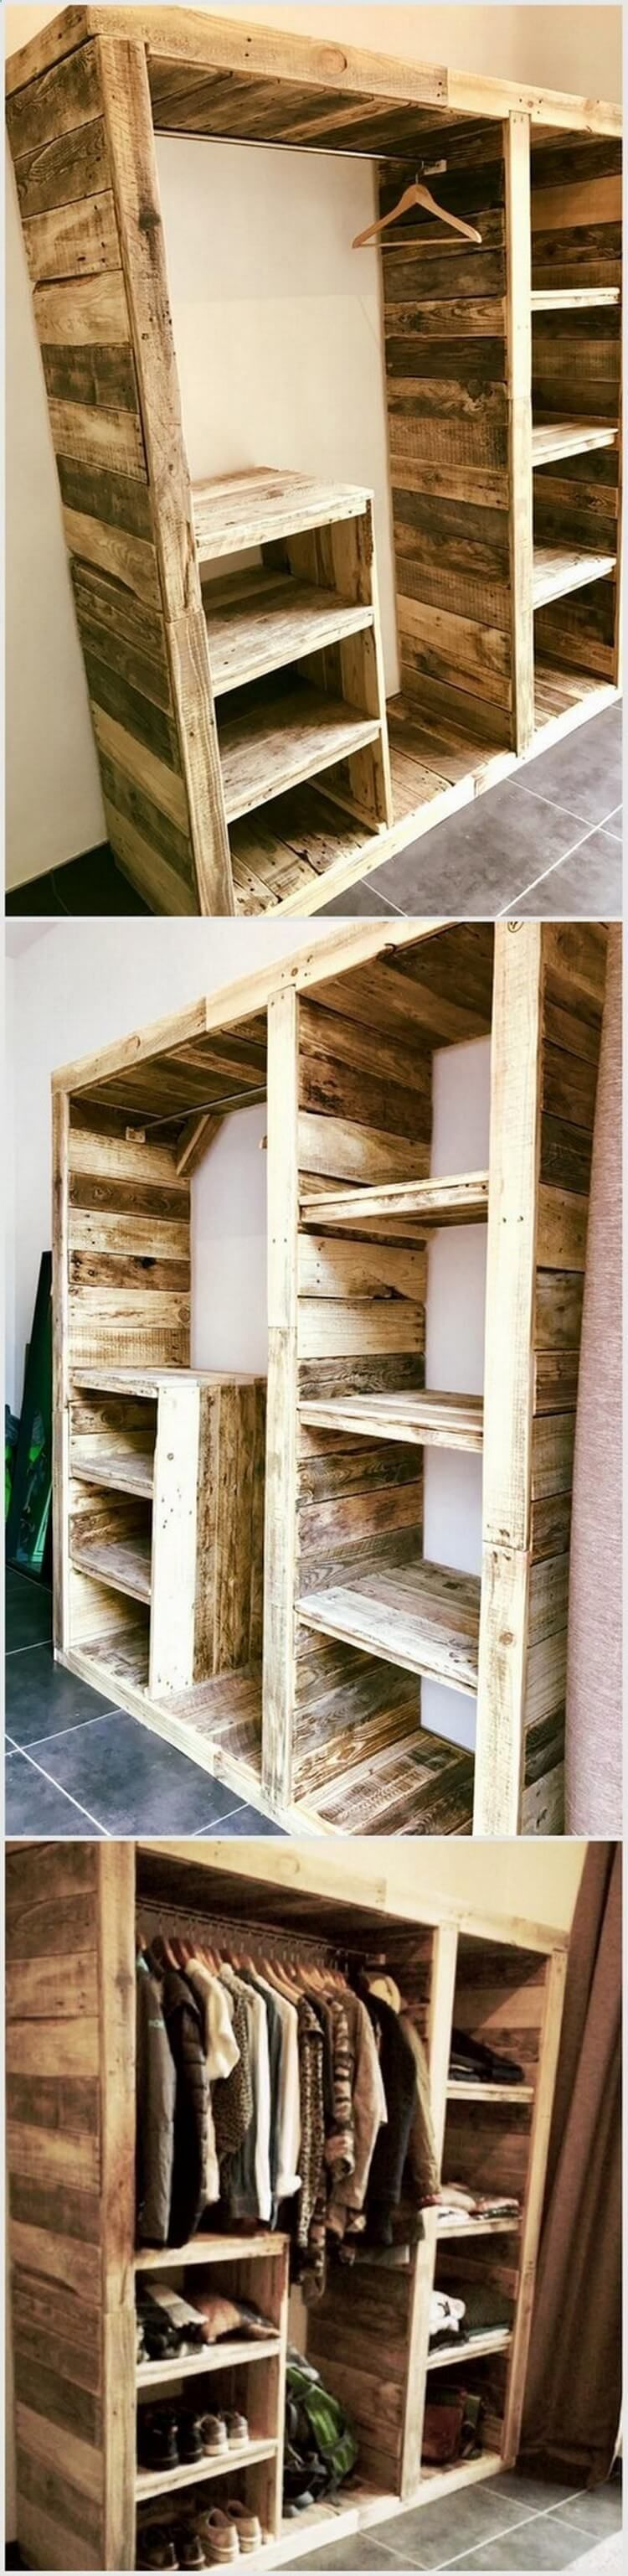 Wood Profits - Recycled Pallet Wardrobe Discover How You ...